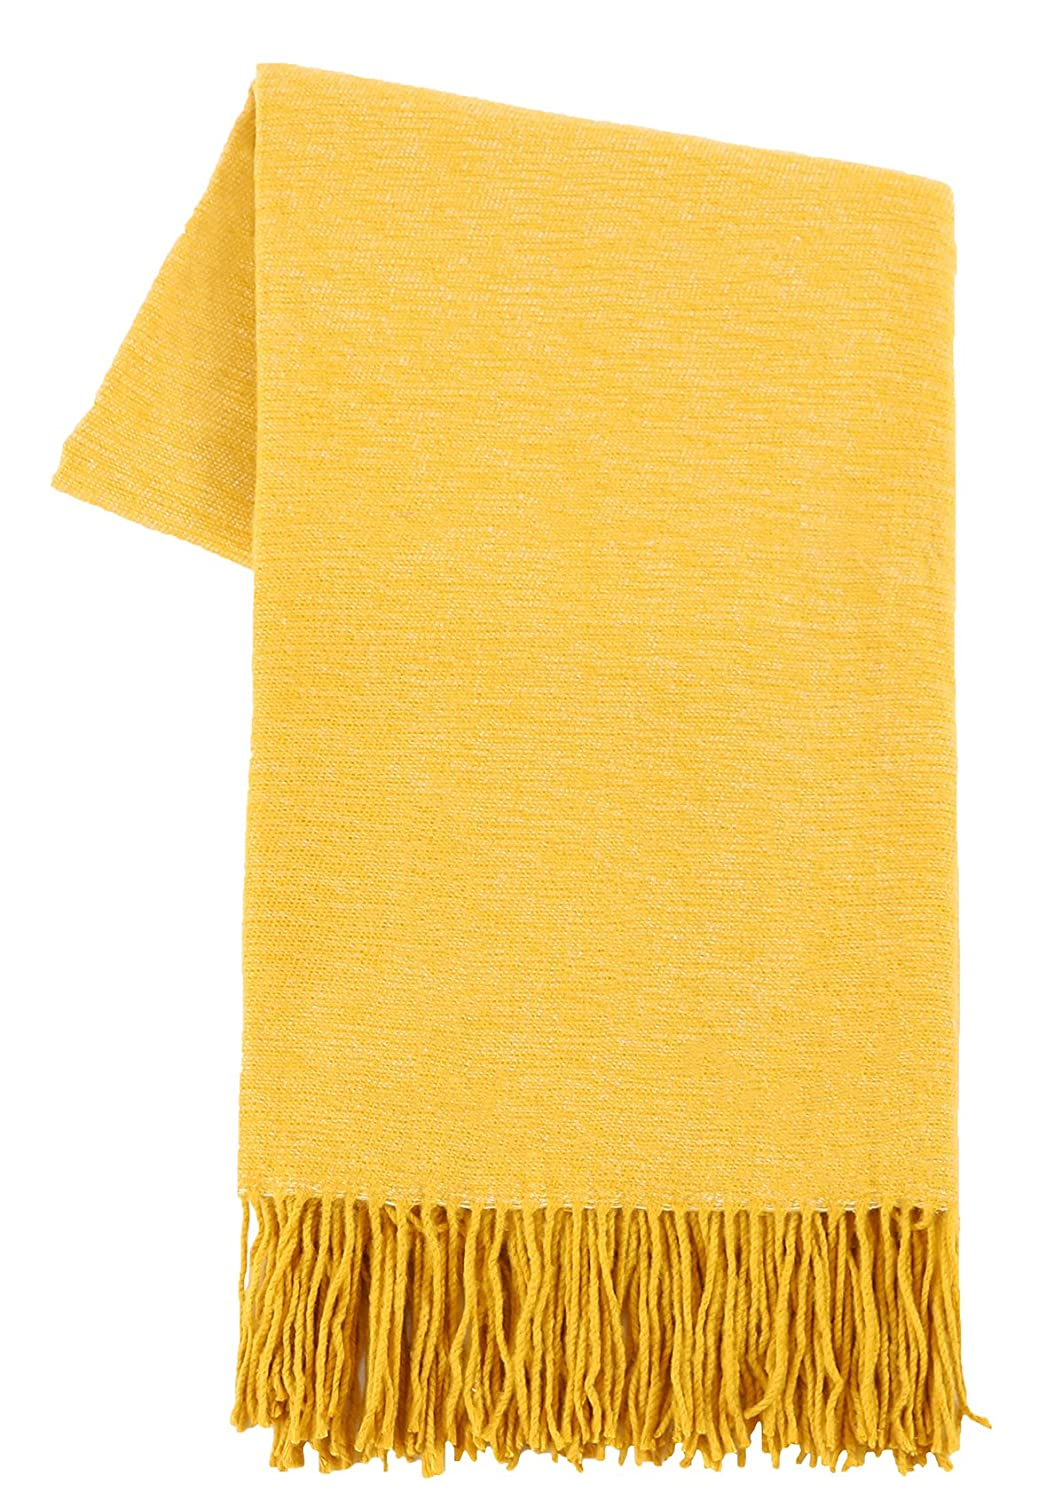 "Slpr Decorative Soft Indoor/Outdoor Throw Blanket (50"" X 60"", Yellow) 